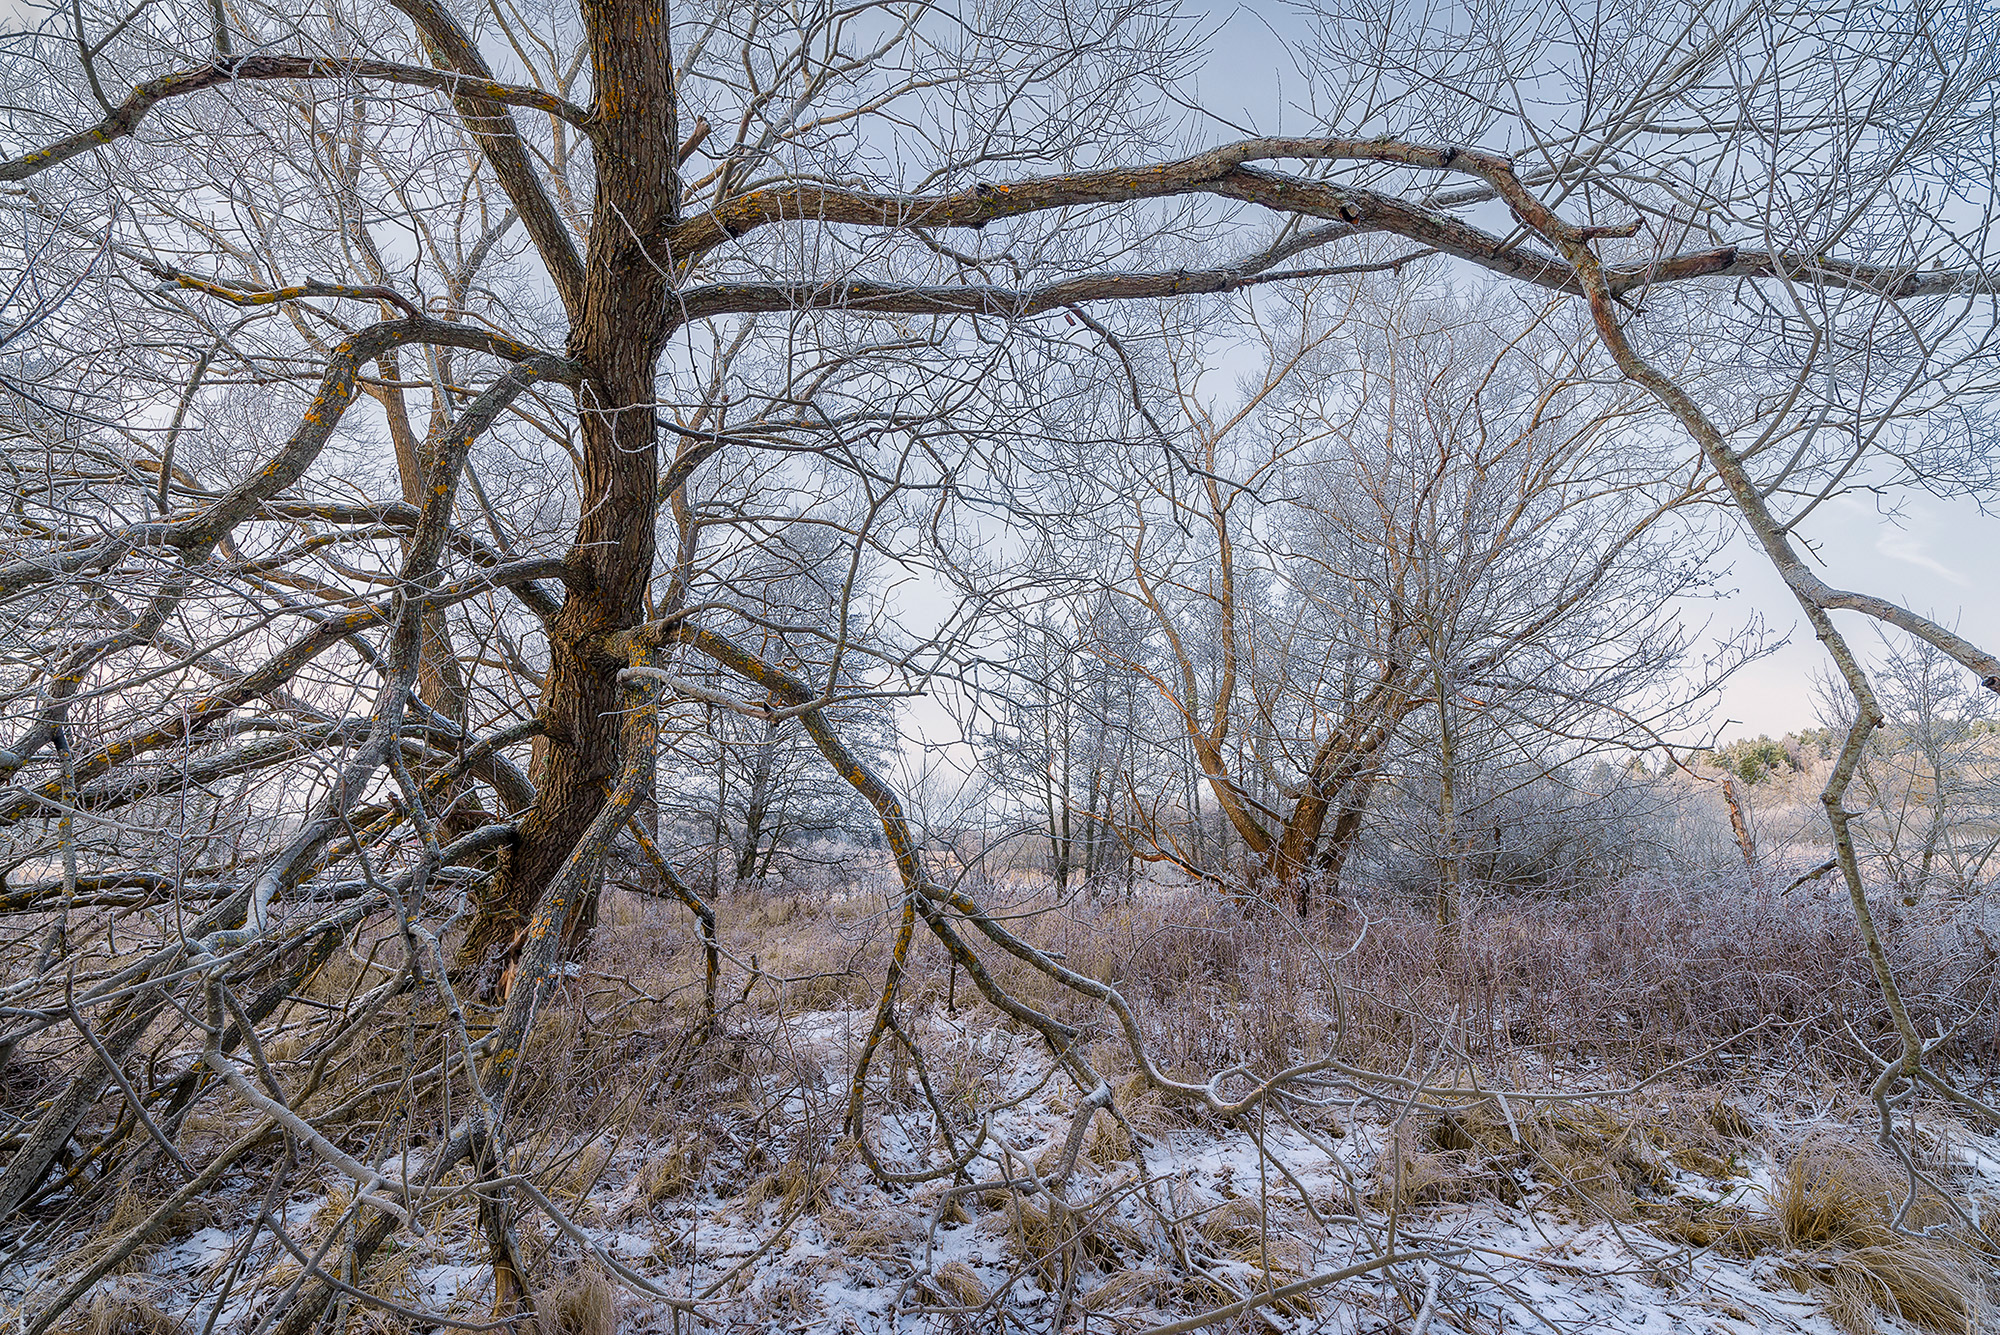 Zeiss Distagon 15 mm F2,8 test photo frosty trees by Hans Strand